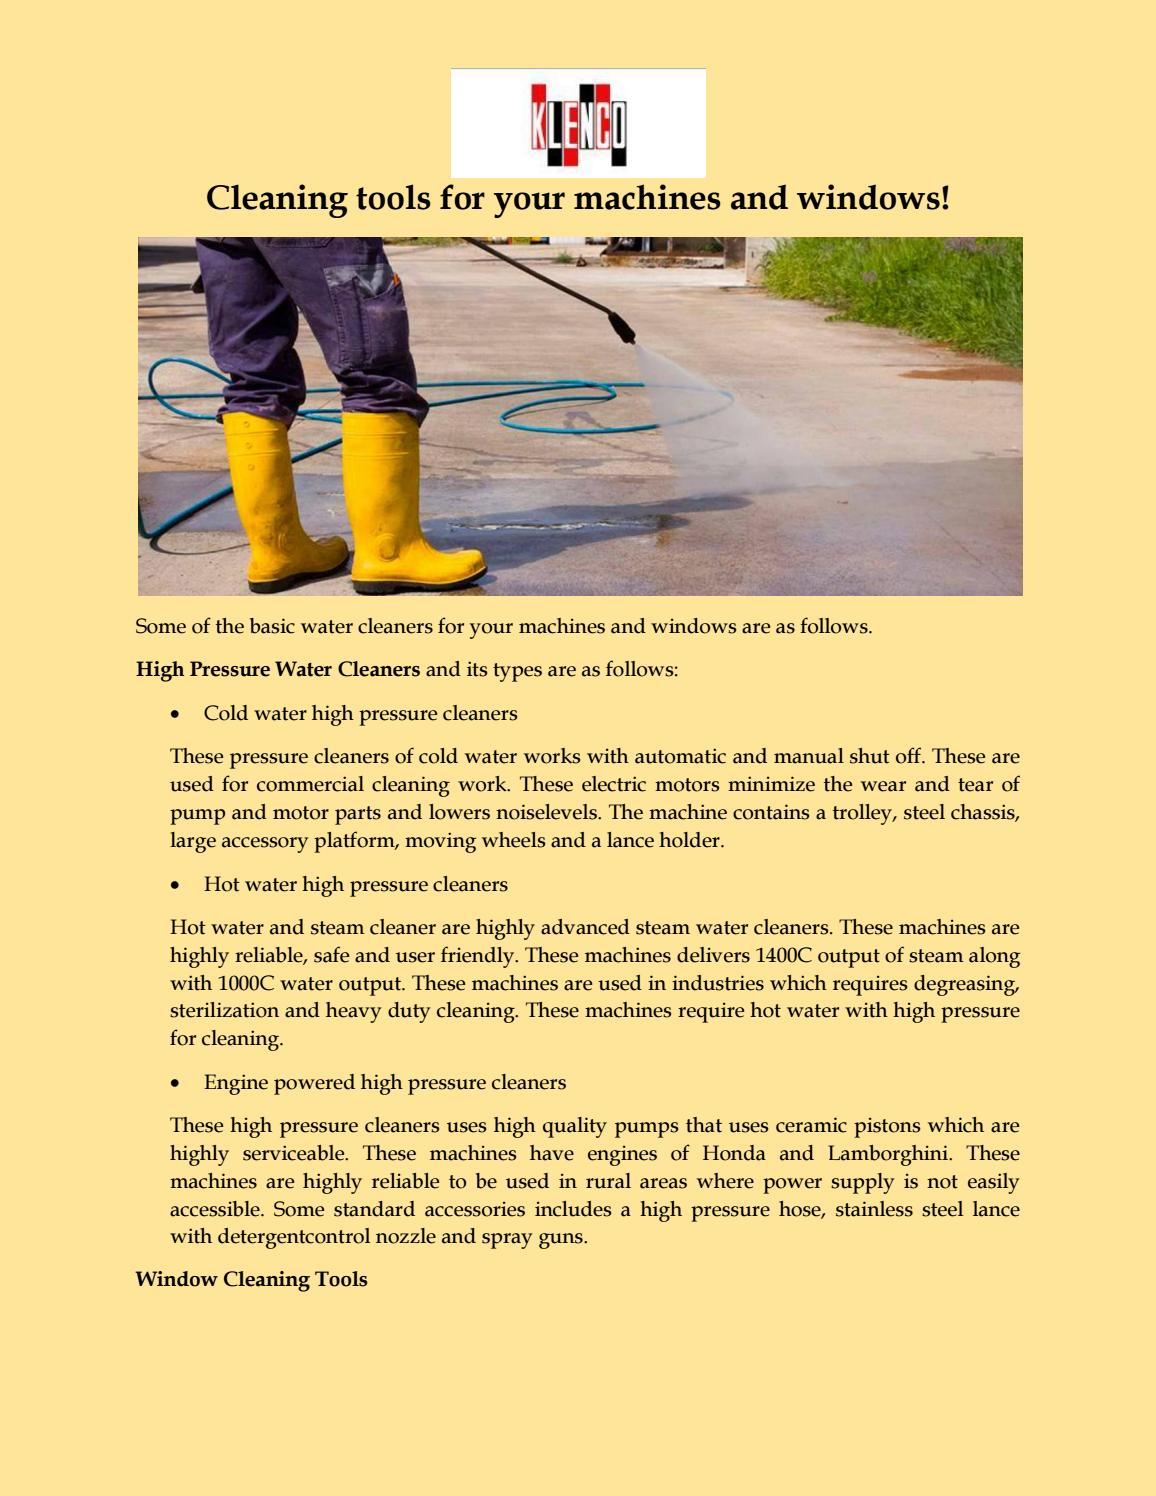 Cleaning tools for your machines and windows by klencoasia